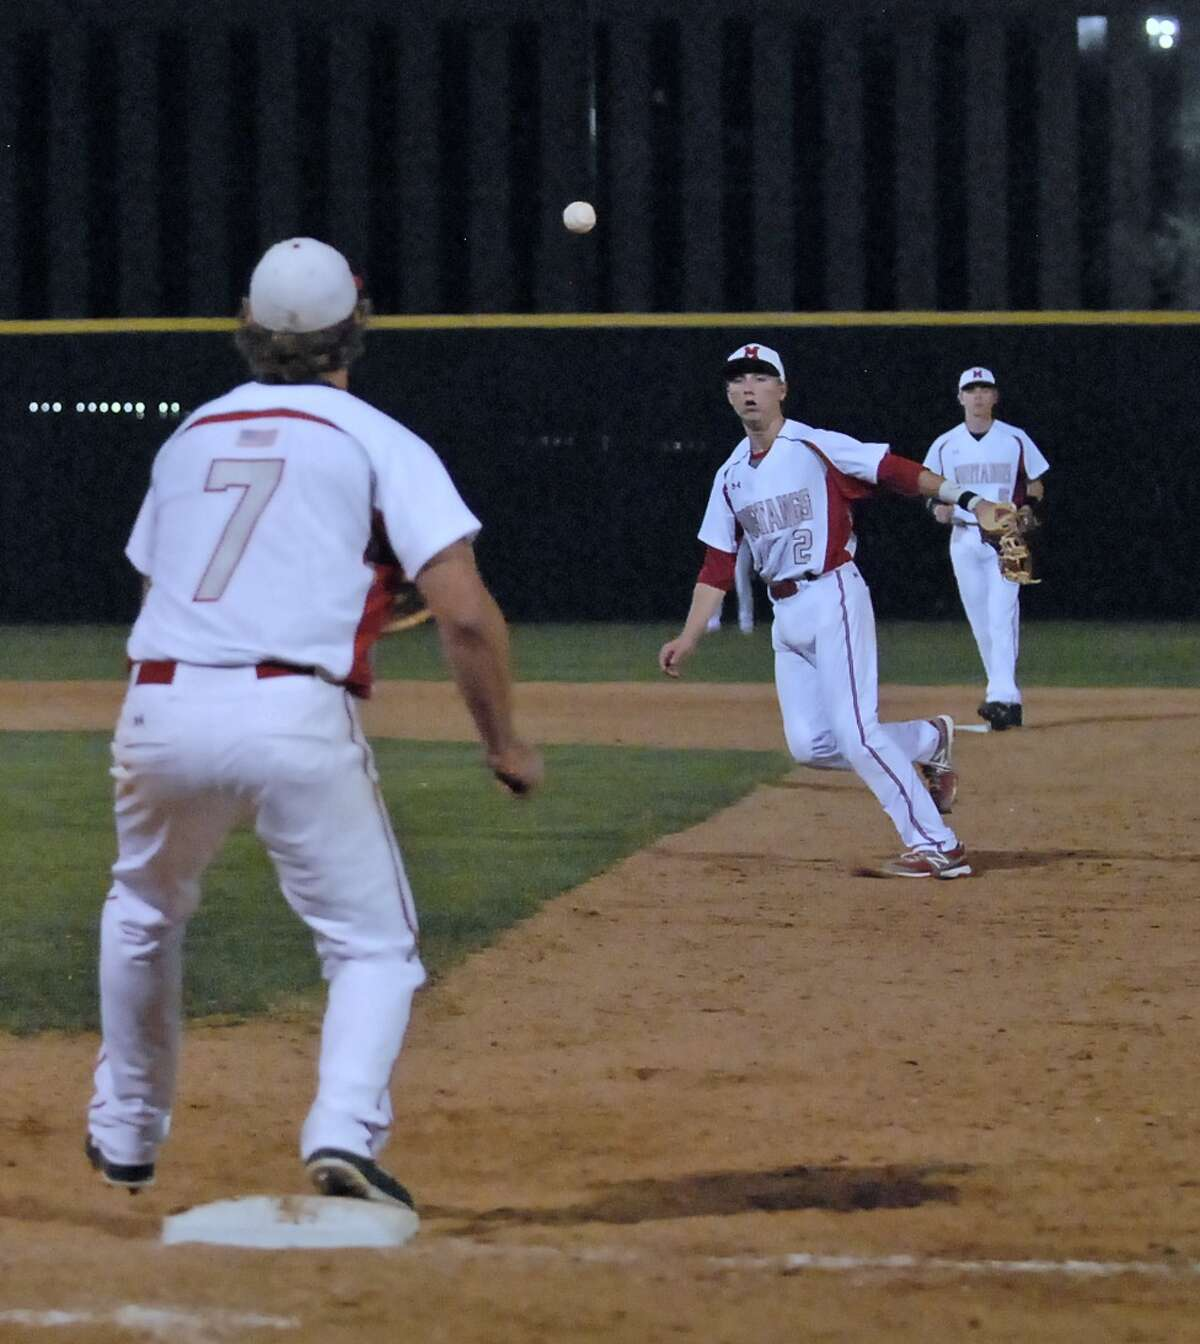 Memorial's Tyler McCloskey (#7) covers first base as Kody Clemens (#2) fields a Stratford hit and throws to first for the force out during their game at Memorial High School Tuesday 2/26/13. Standing on second base is Reid Nagle (#5). Photo by Tony Bullard.